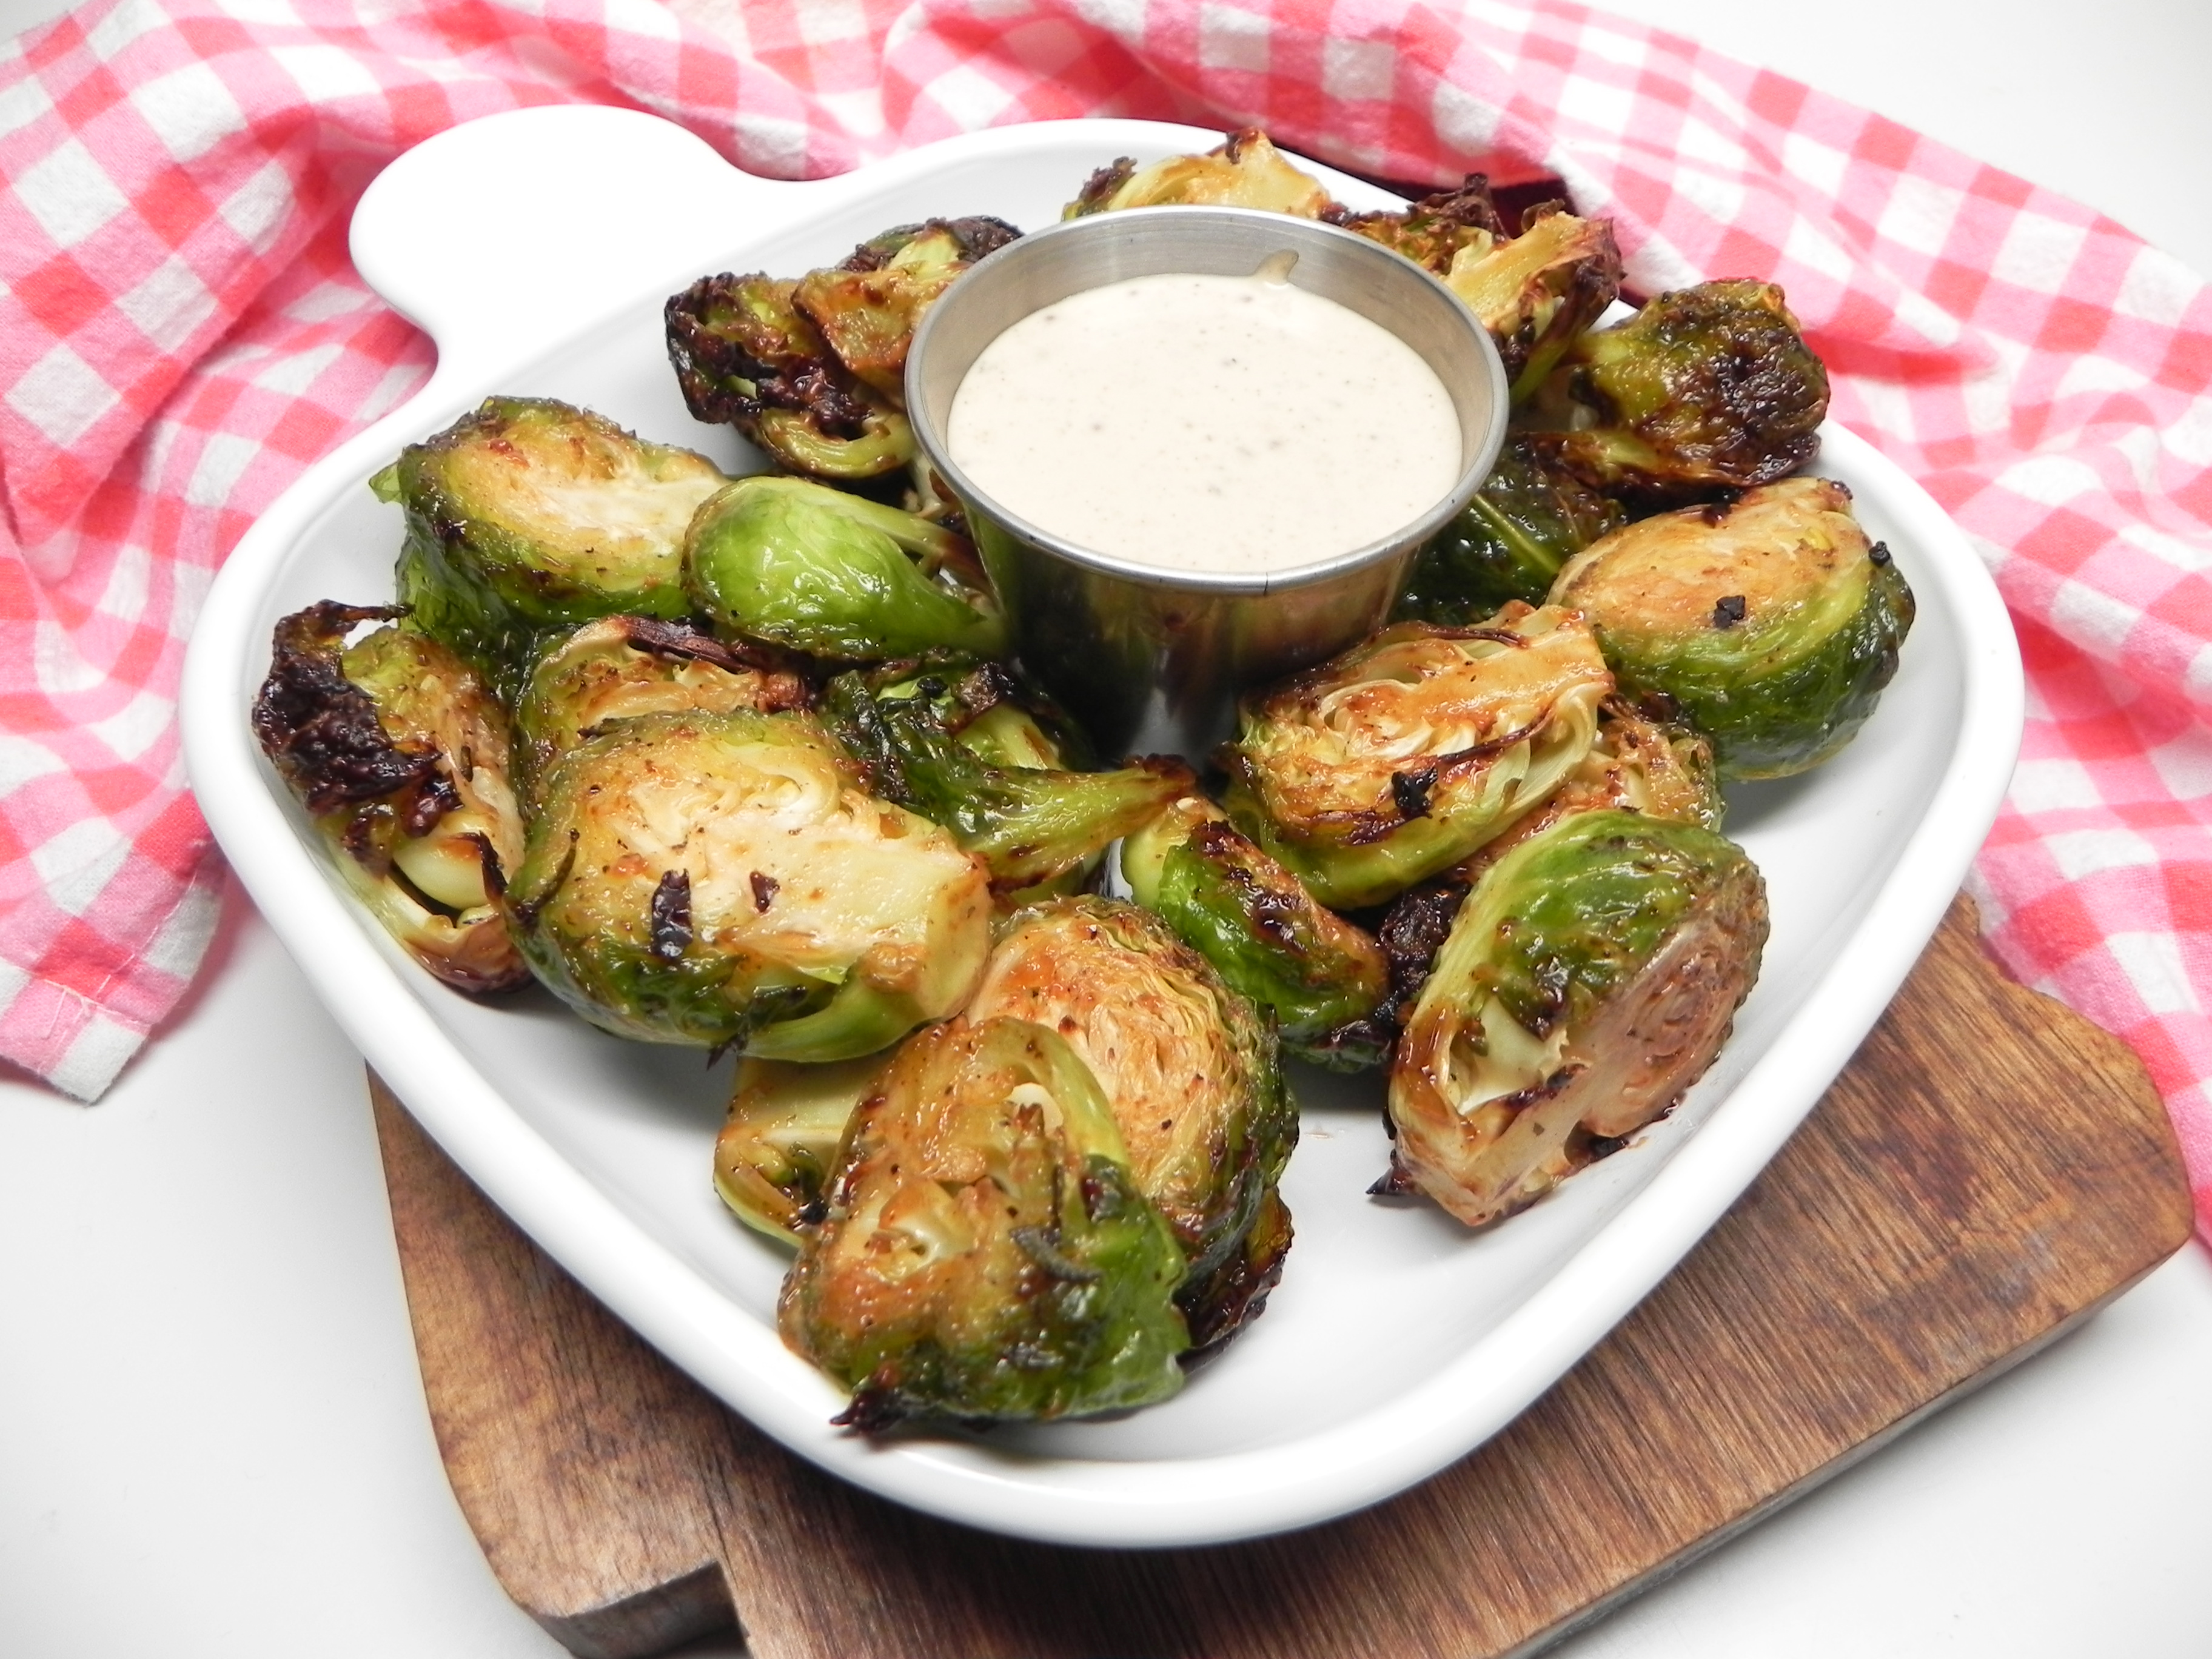 Air Fryer Roasted Brussels Sprouts with Maple-Mustard Mayo Soup Loving Nicole